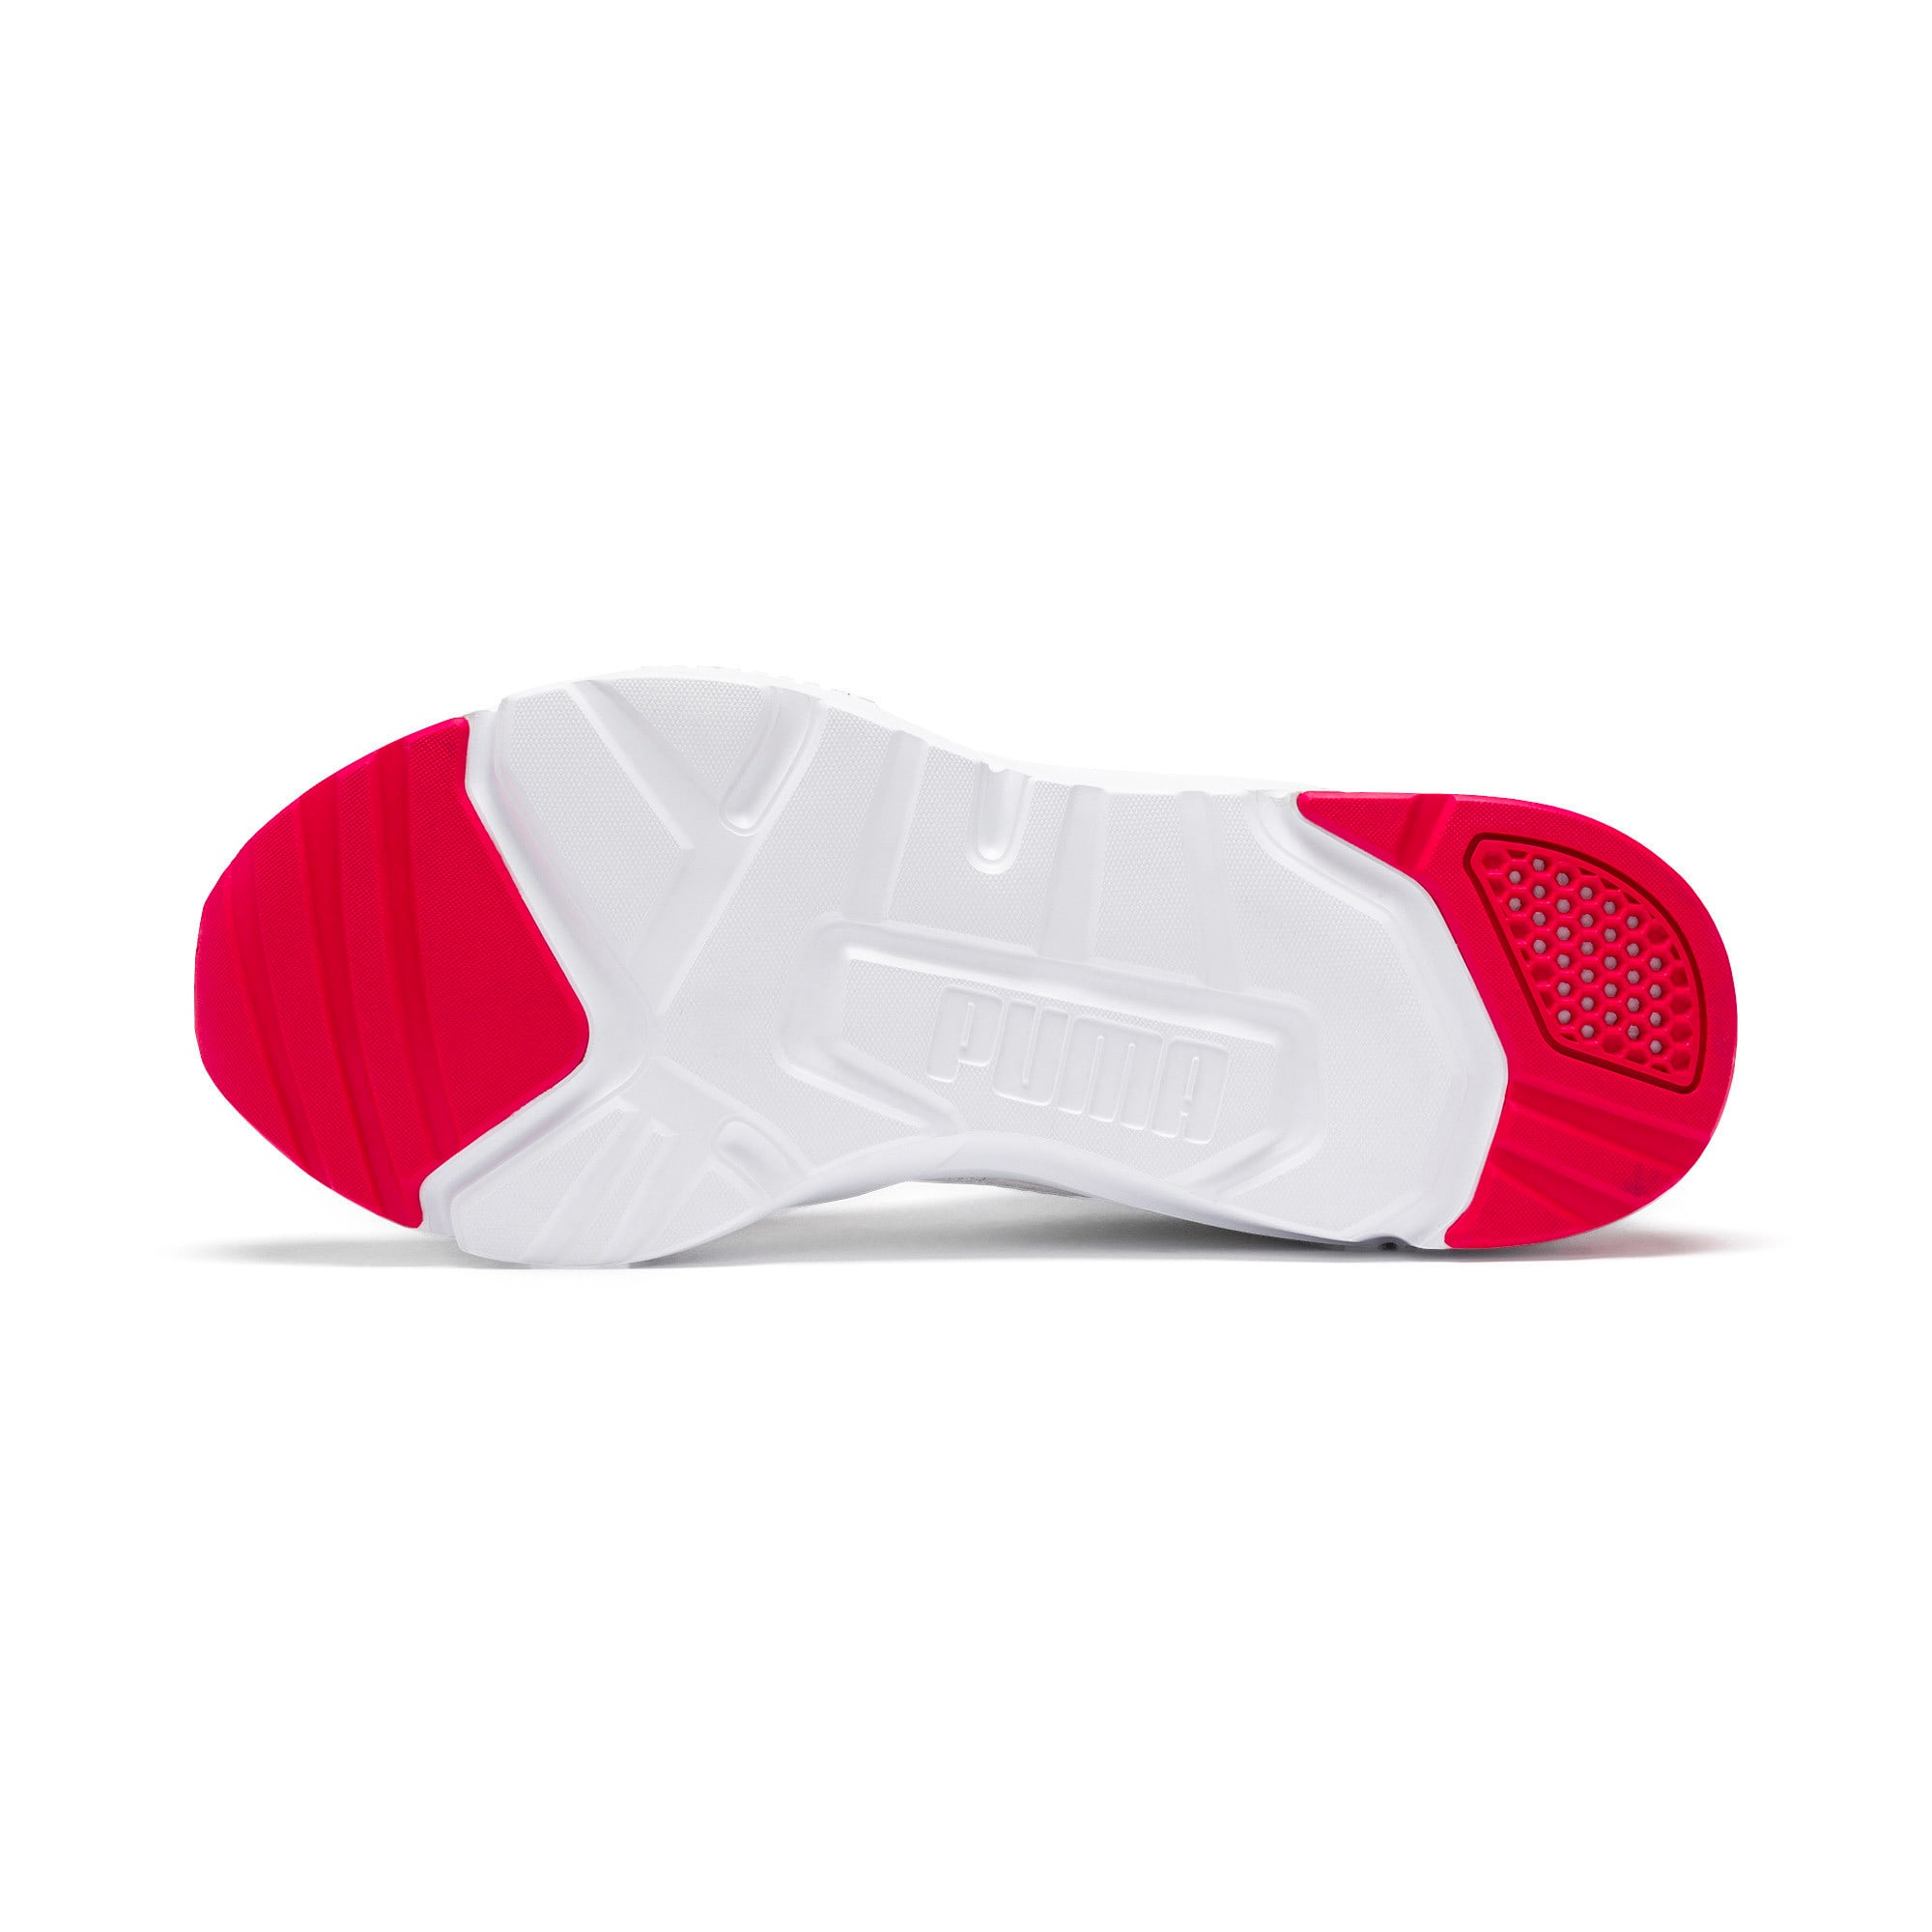 Thumbnail 5 of CELL Phase Men's Training Shoes, Puma White-High Risk Red, medium